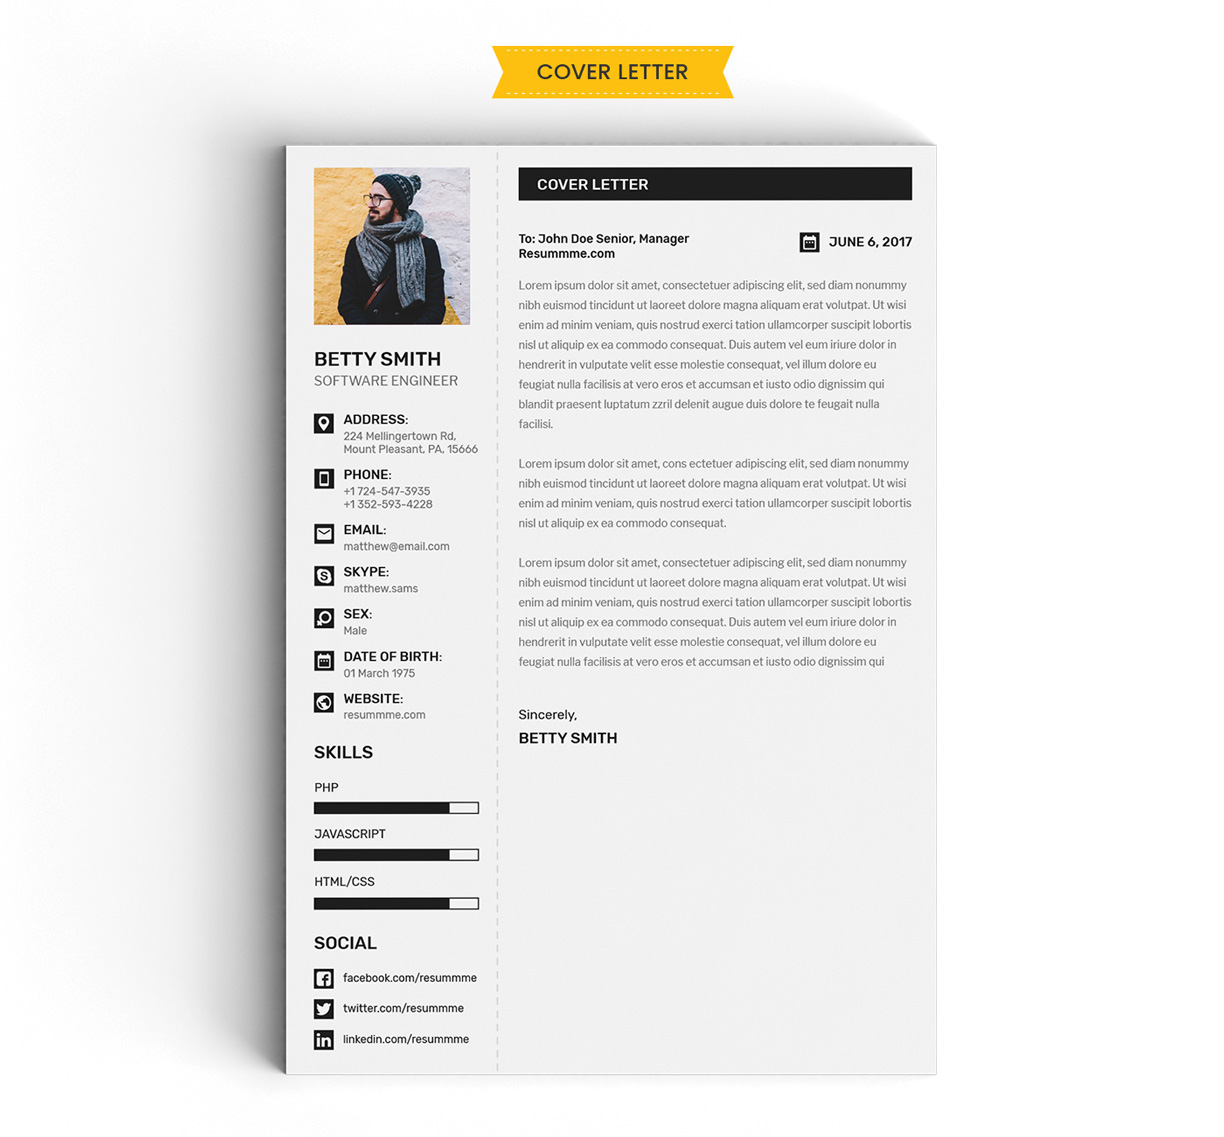 Free Simple Resume (CV) Design Template With Cover Letter & Portfolio Ai File (5)